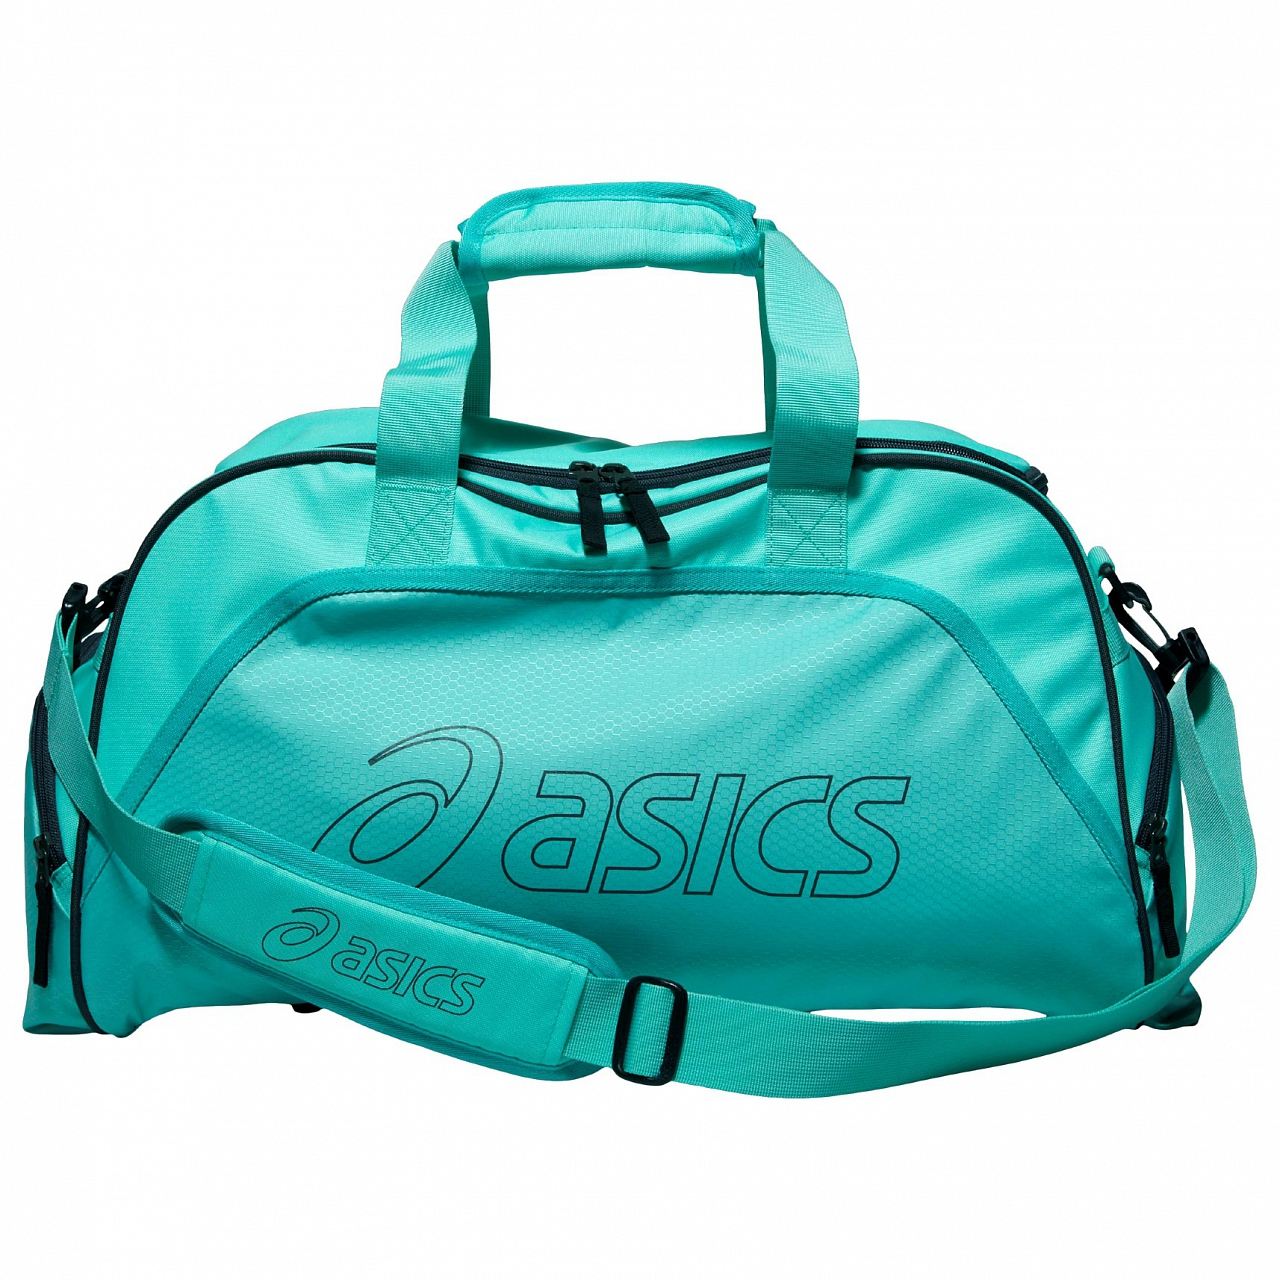 Спортивная сумка Asics Medium Duffle (110540 4002)